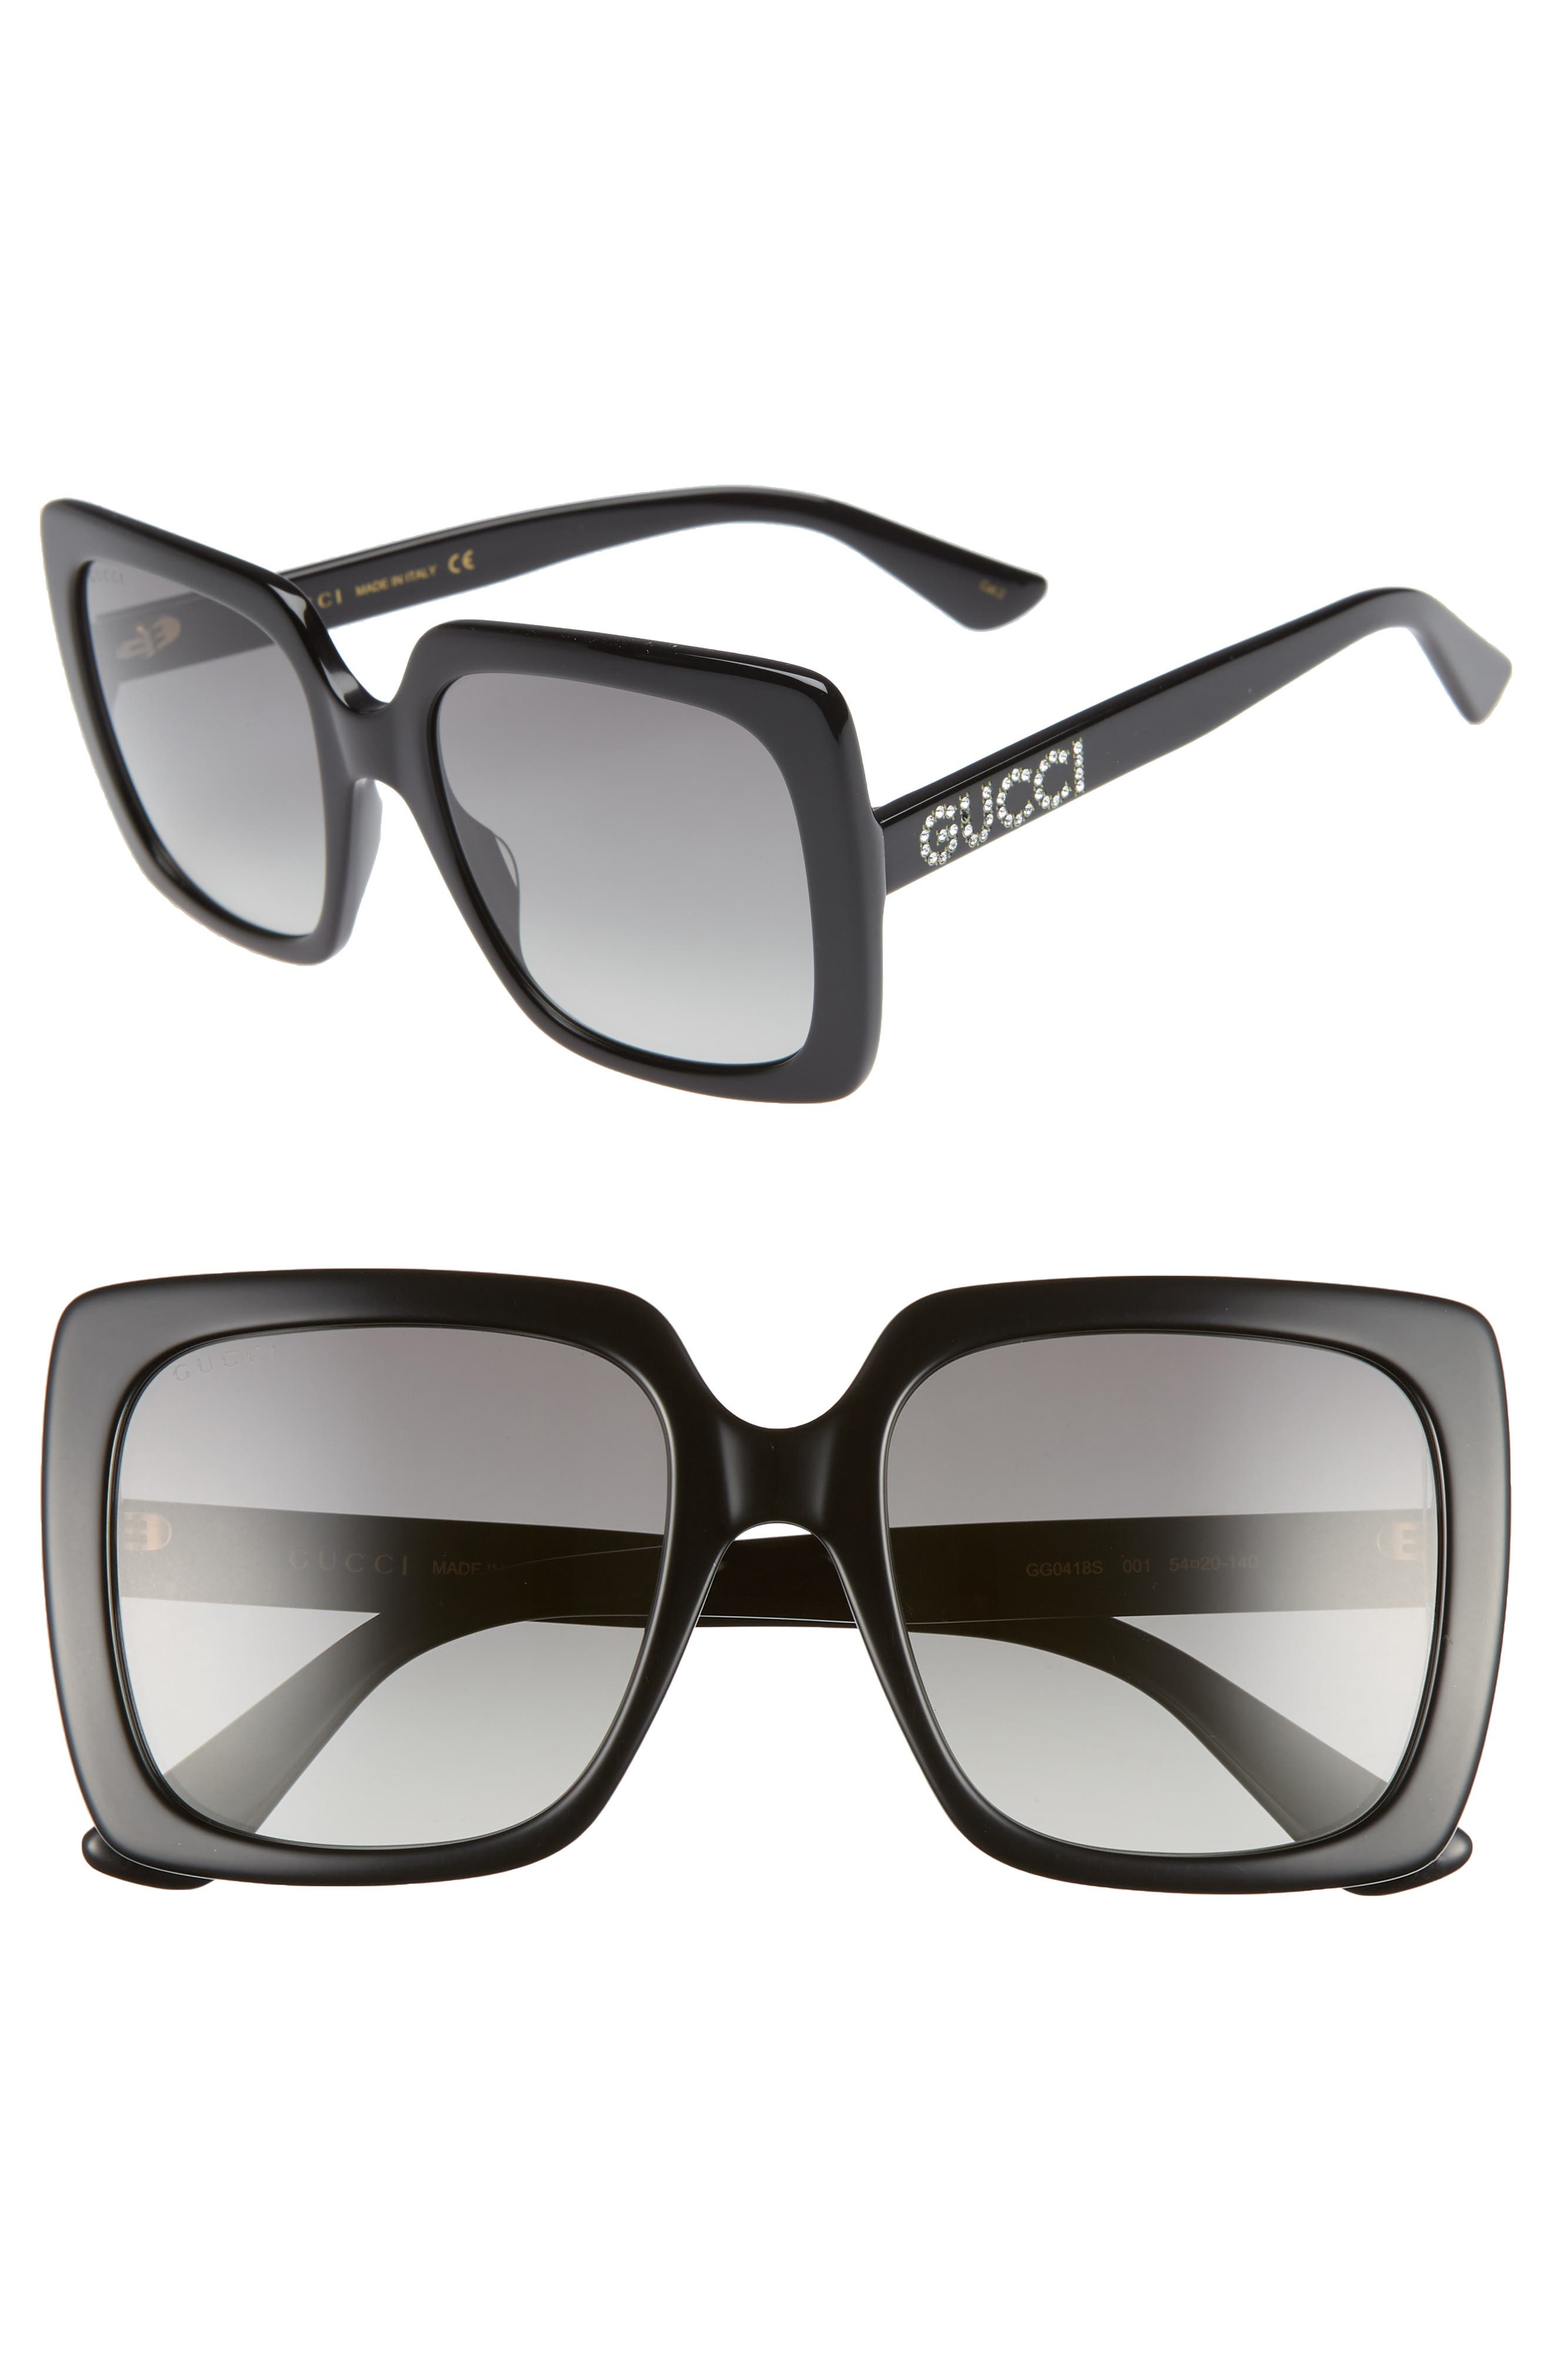 GUCCI,                             54mm Gradient Square Sunglasses,                             Main thumbnail 1, color,                             BLACK/ CRYSTAL/ GREY GRADIENT